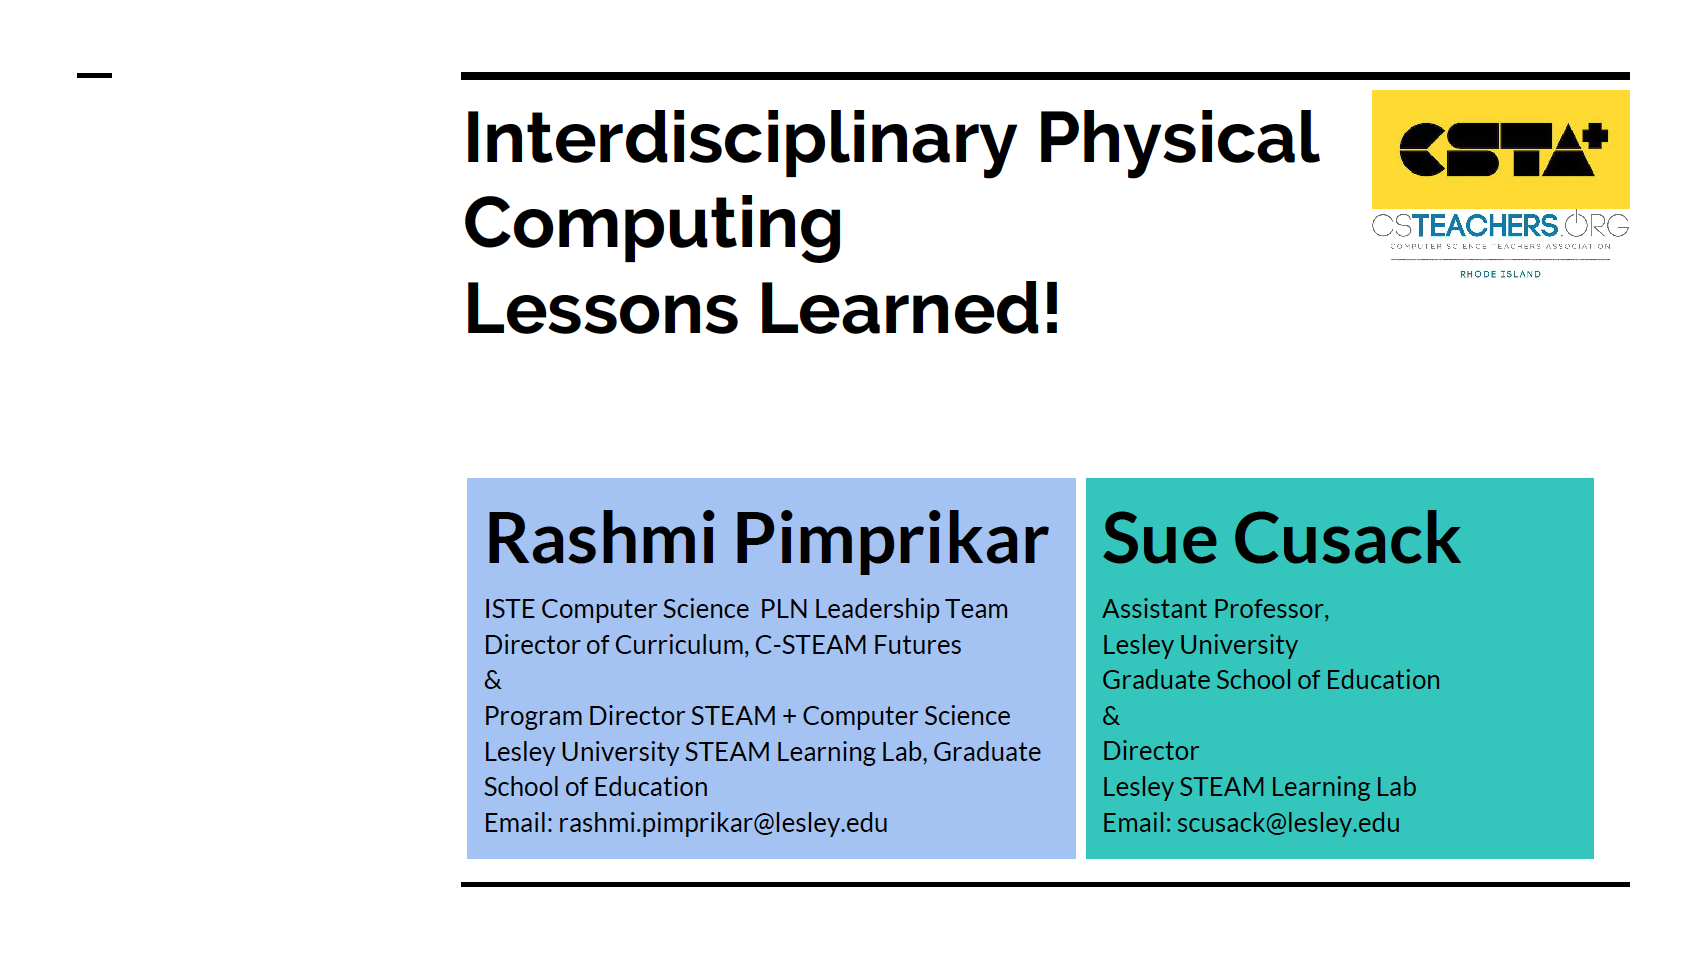 CSTA_Physical_Computing_2018_GoogleSlides